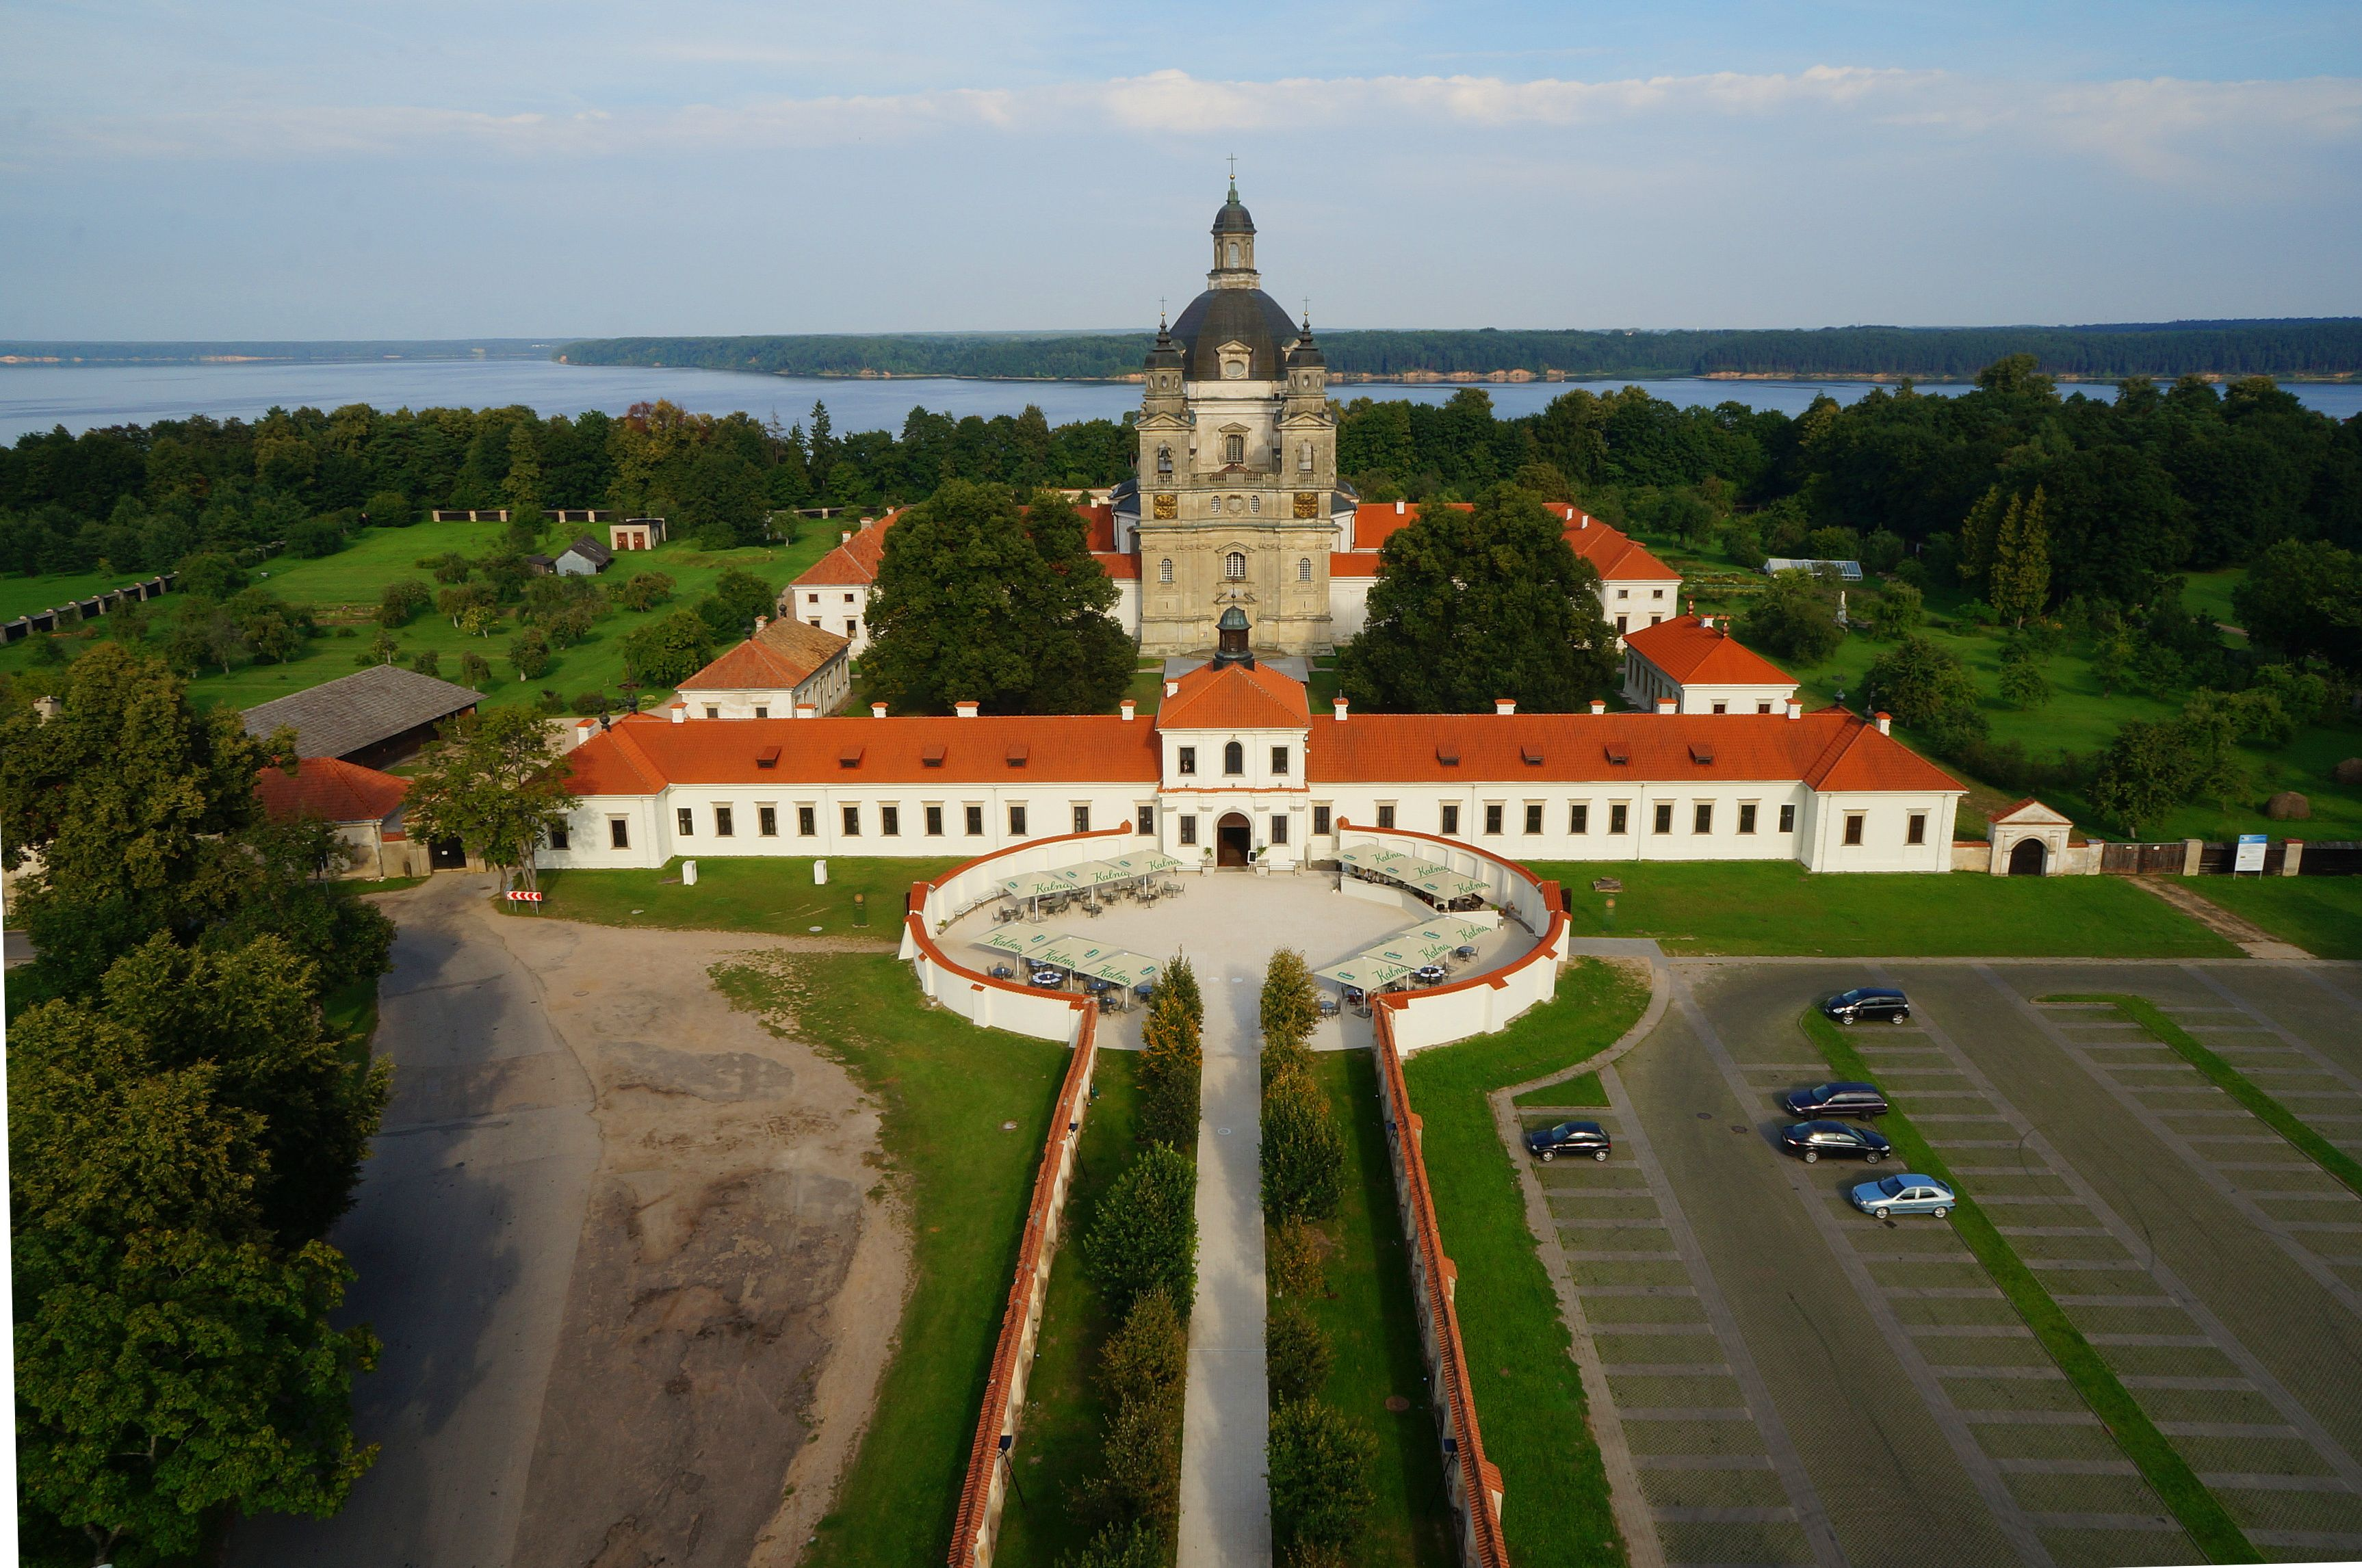 Pazaislis Monastery On The Shore Of The Largest Lithuanian Artificial Lake Is A Must Do Have A Great Artificial Lake Ferry Building San Francisco Great Walks